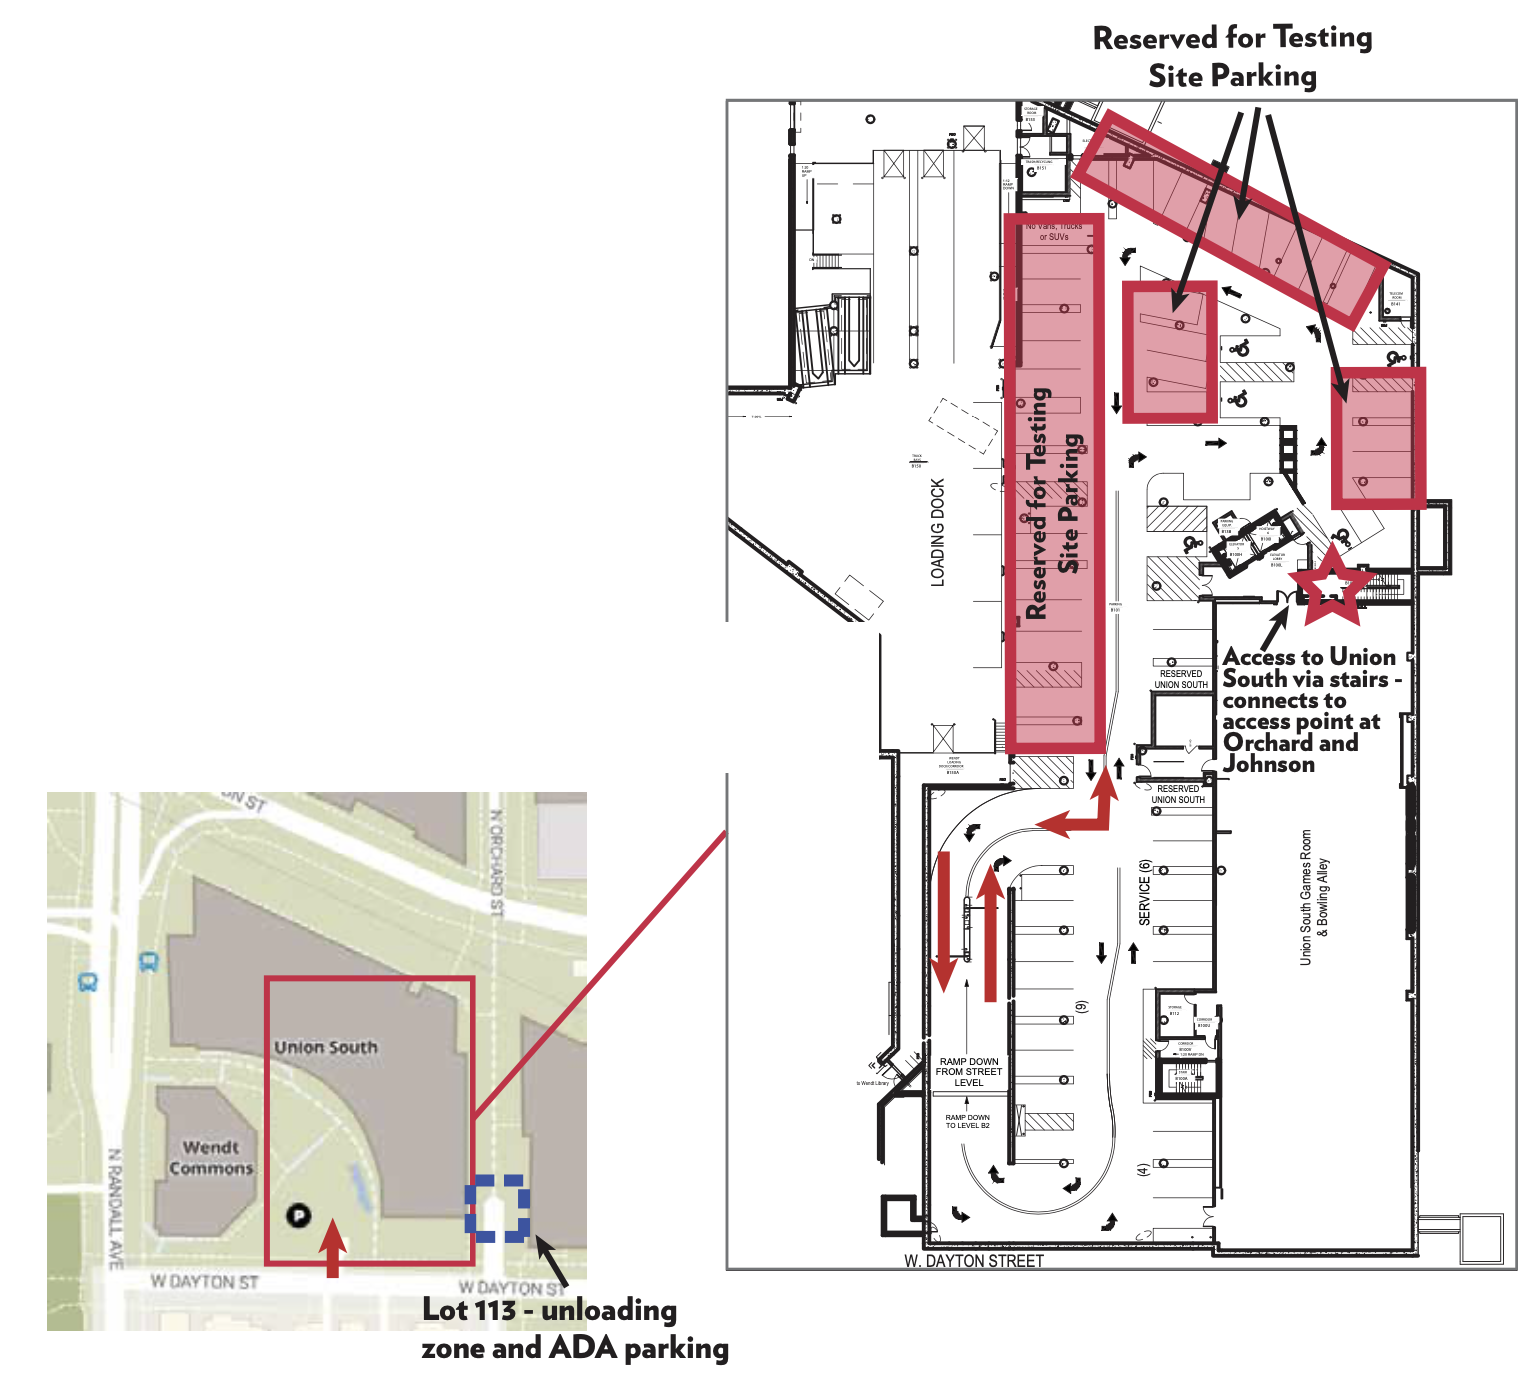 Map showing designated COVID-19 testing and ADA parking spots. Read prior text for details.